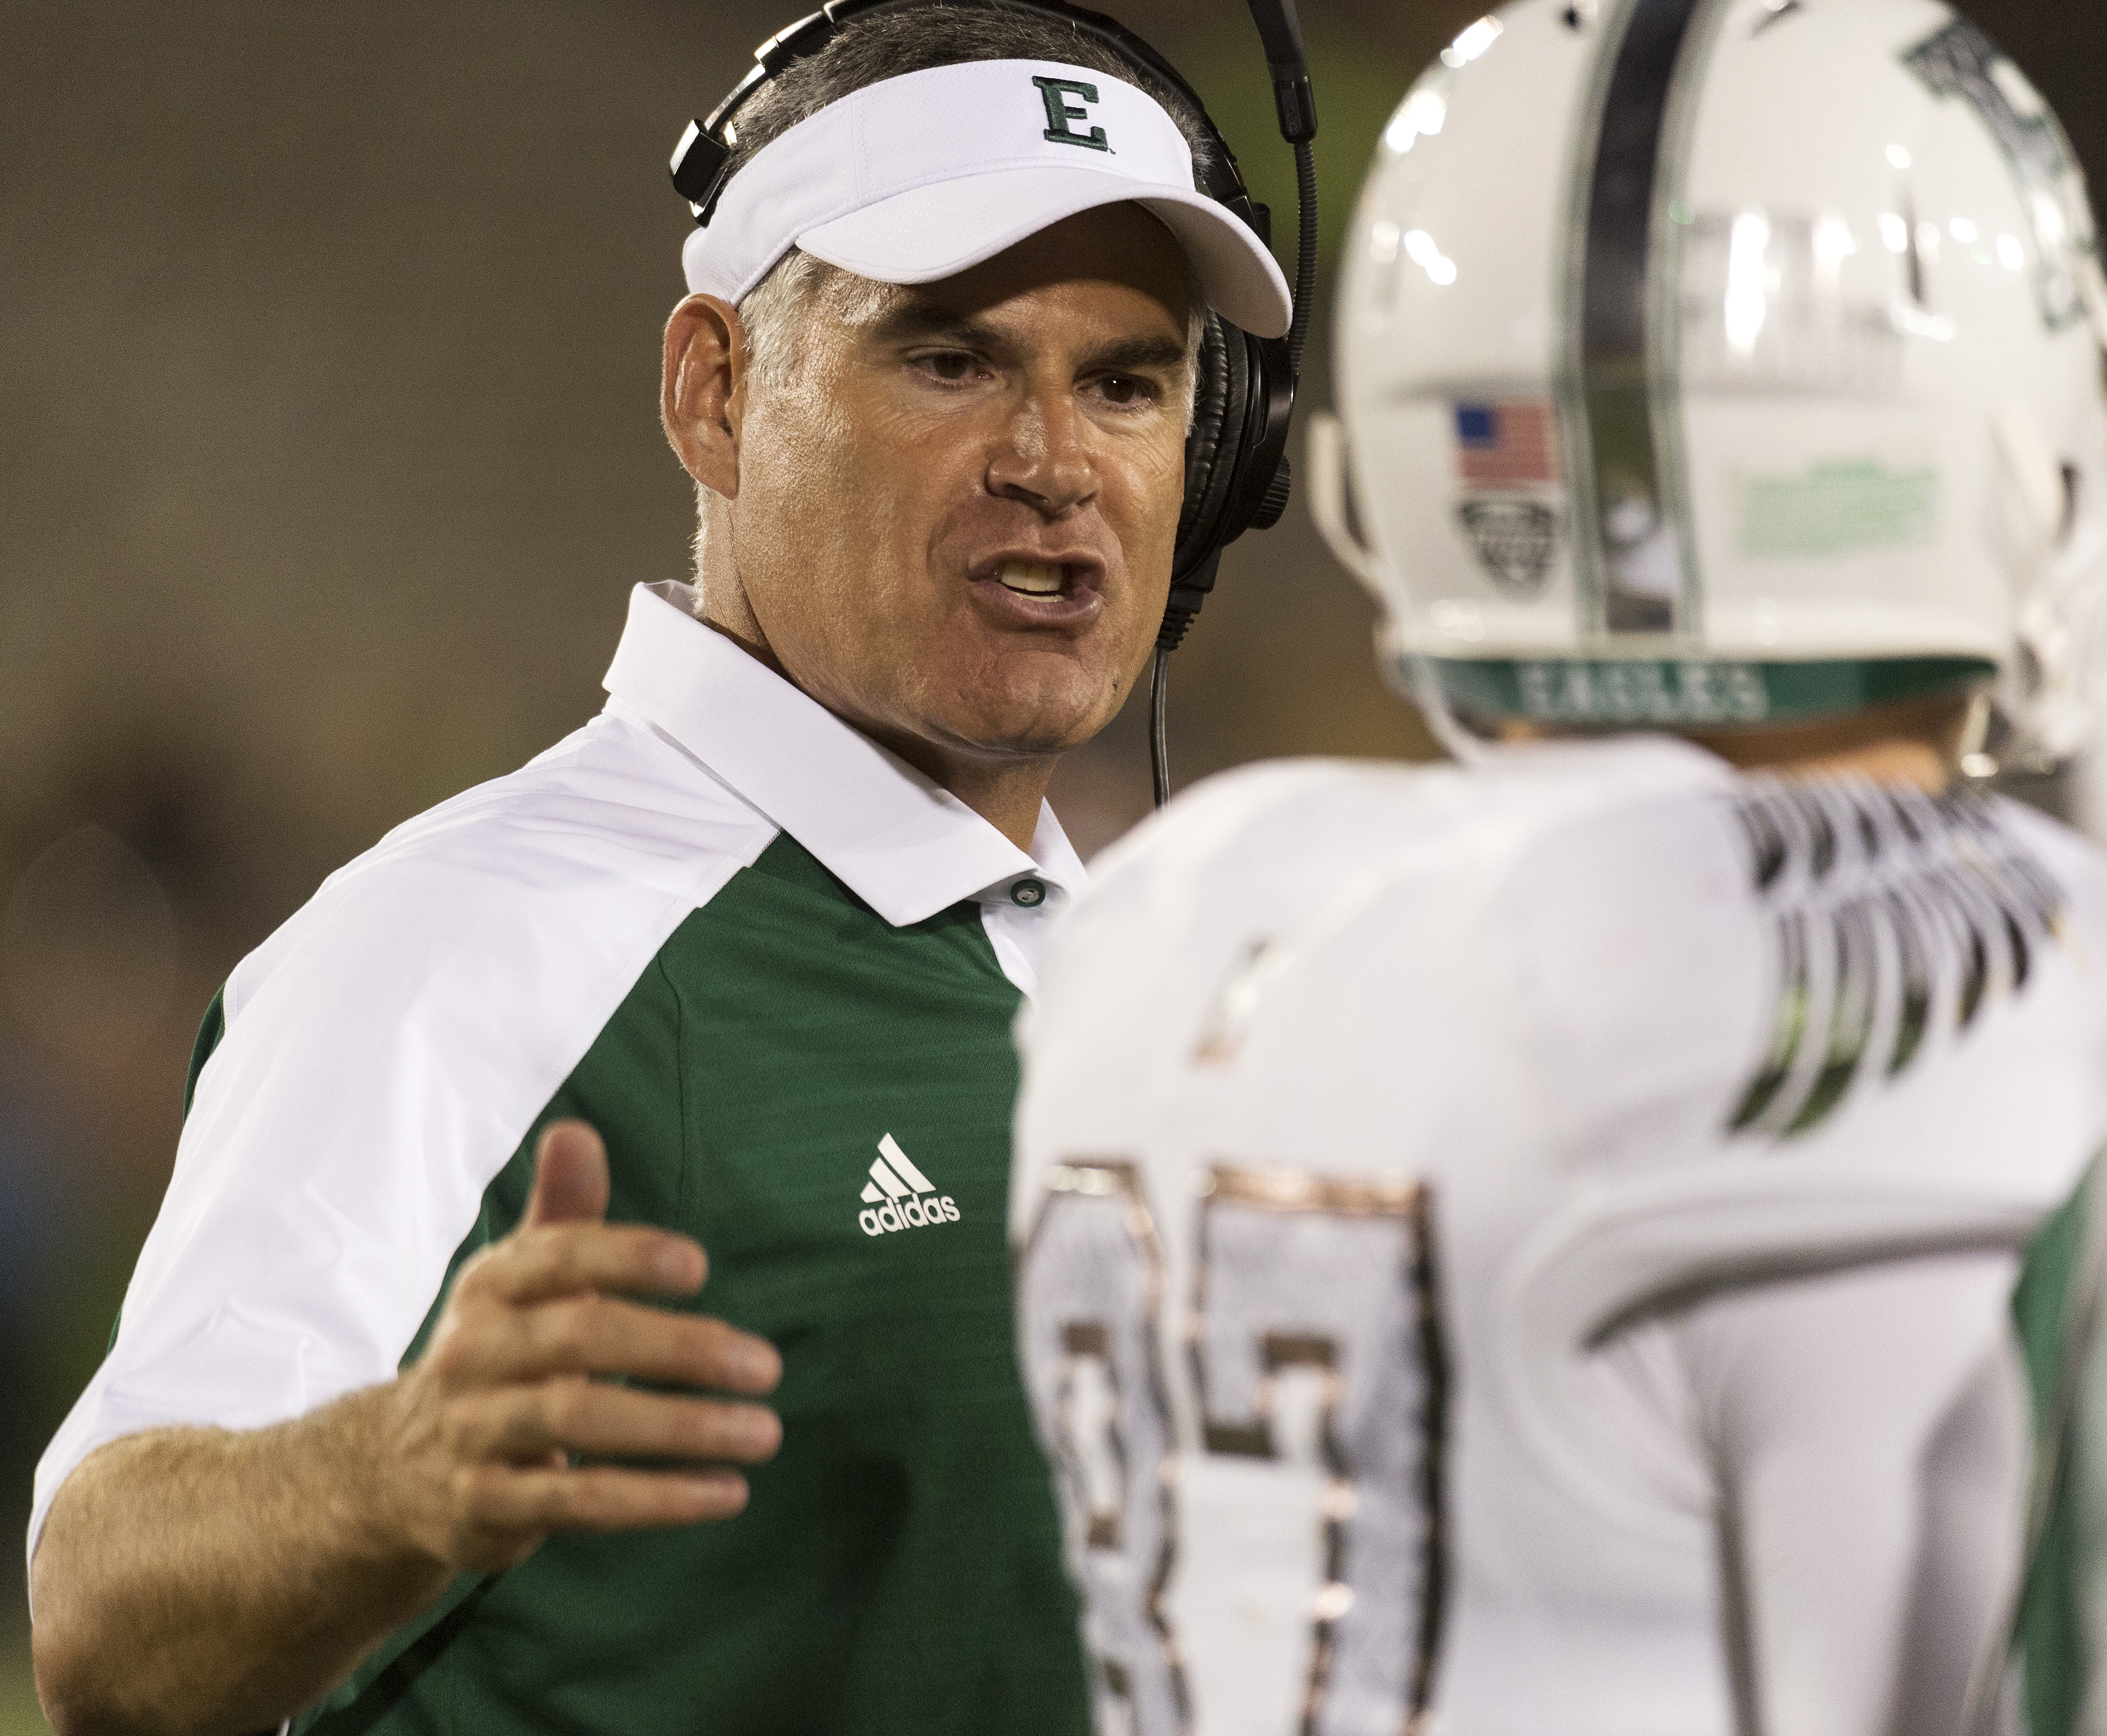 Eastern Michigan head coach Chris Creighton, left, talks to wide receiver Mathew Sexton during the third quarter of an NCAA college football game against Missouri Saturday, Sept. 10, 2016, in Columbia, Mo. (AP Photo/L.G. Patterson)